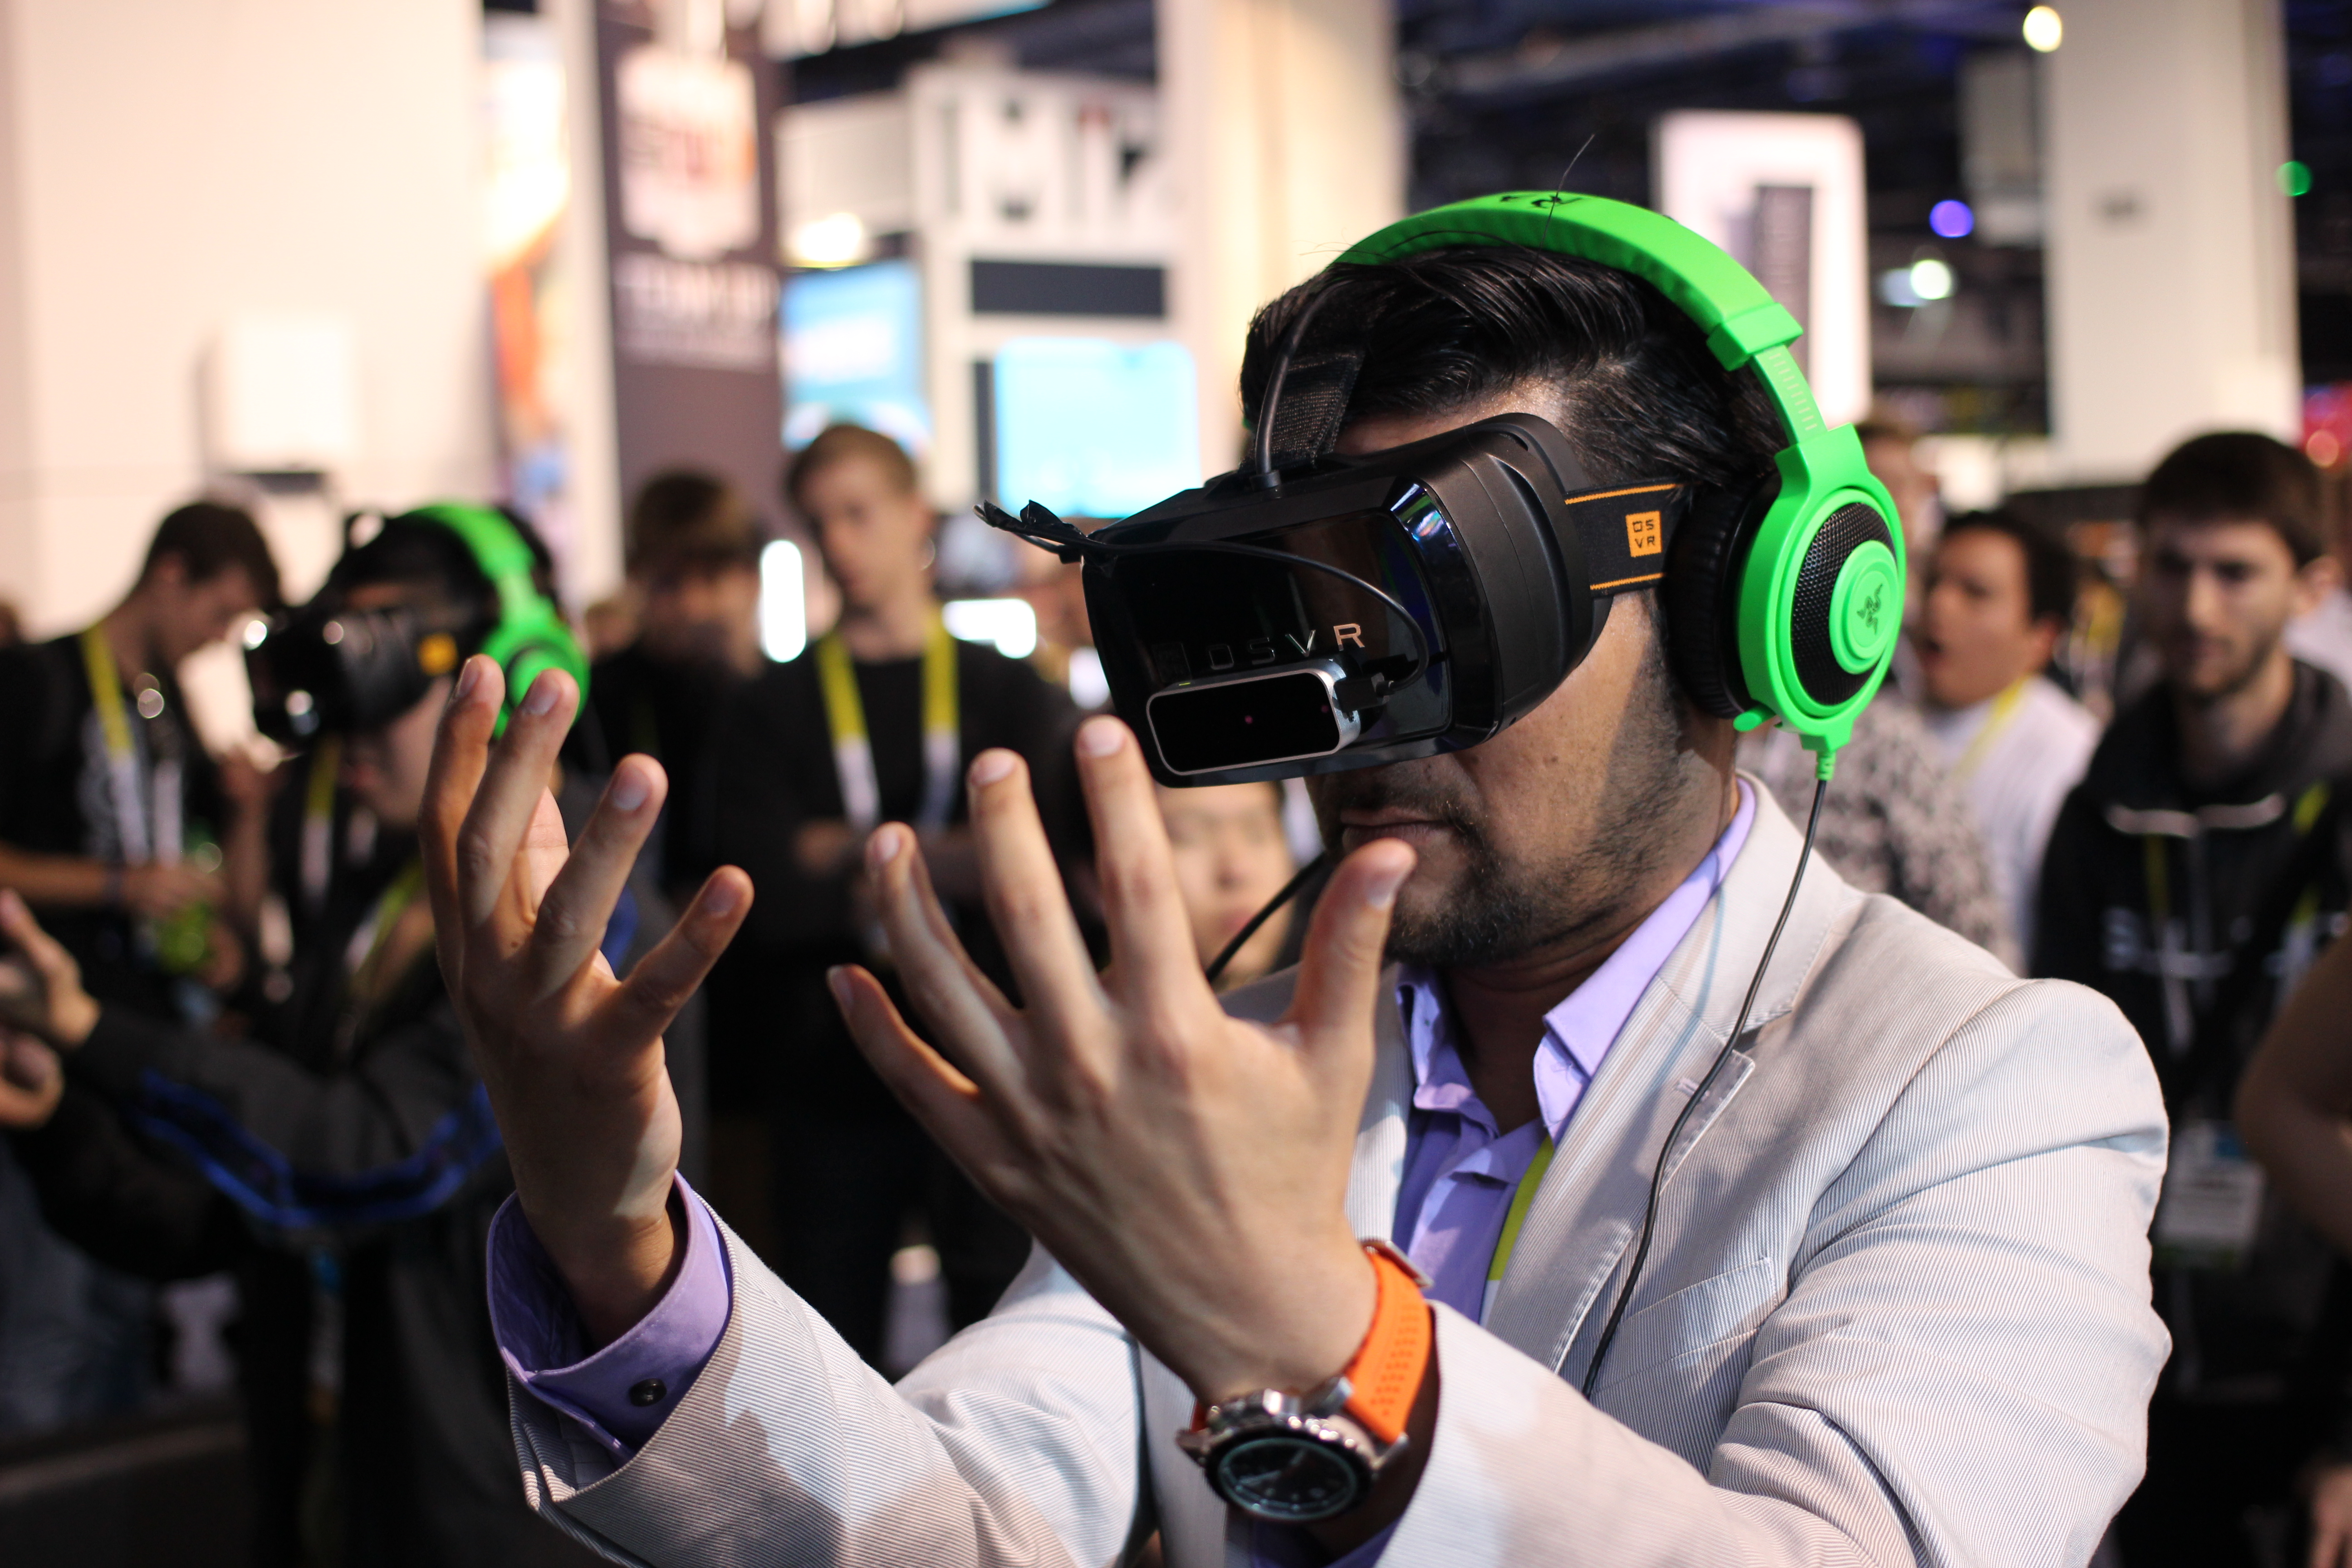 Virtual Reality. Image source: https://www.flickr.com/photos/pestoverde/16863422875